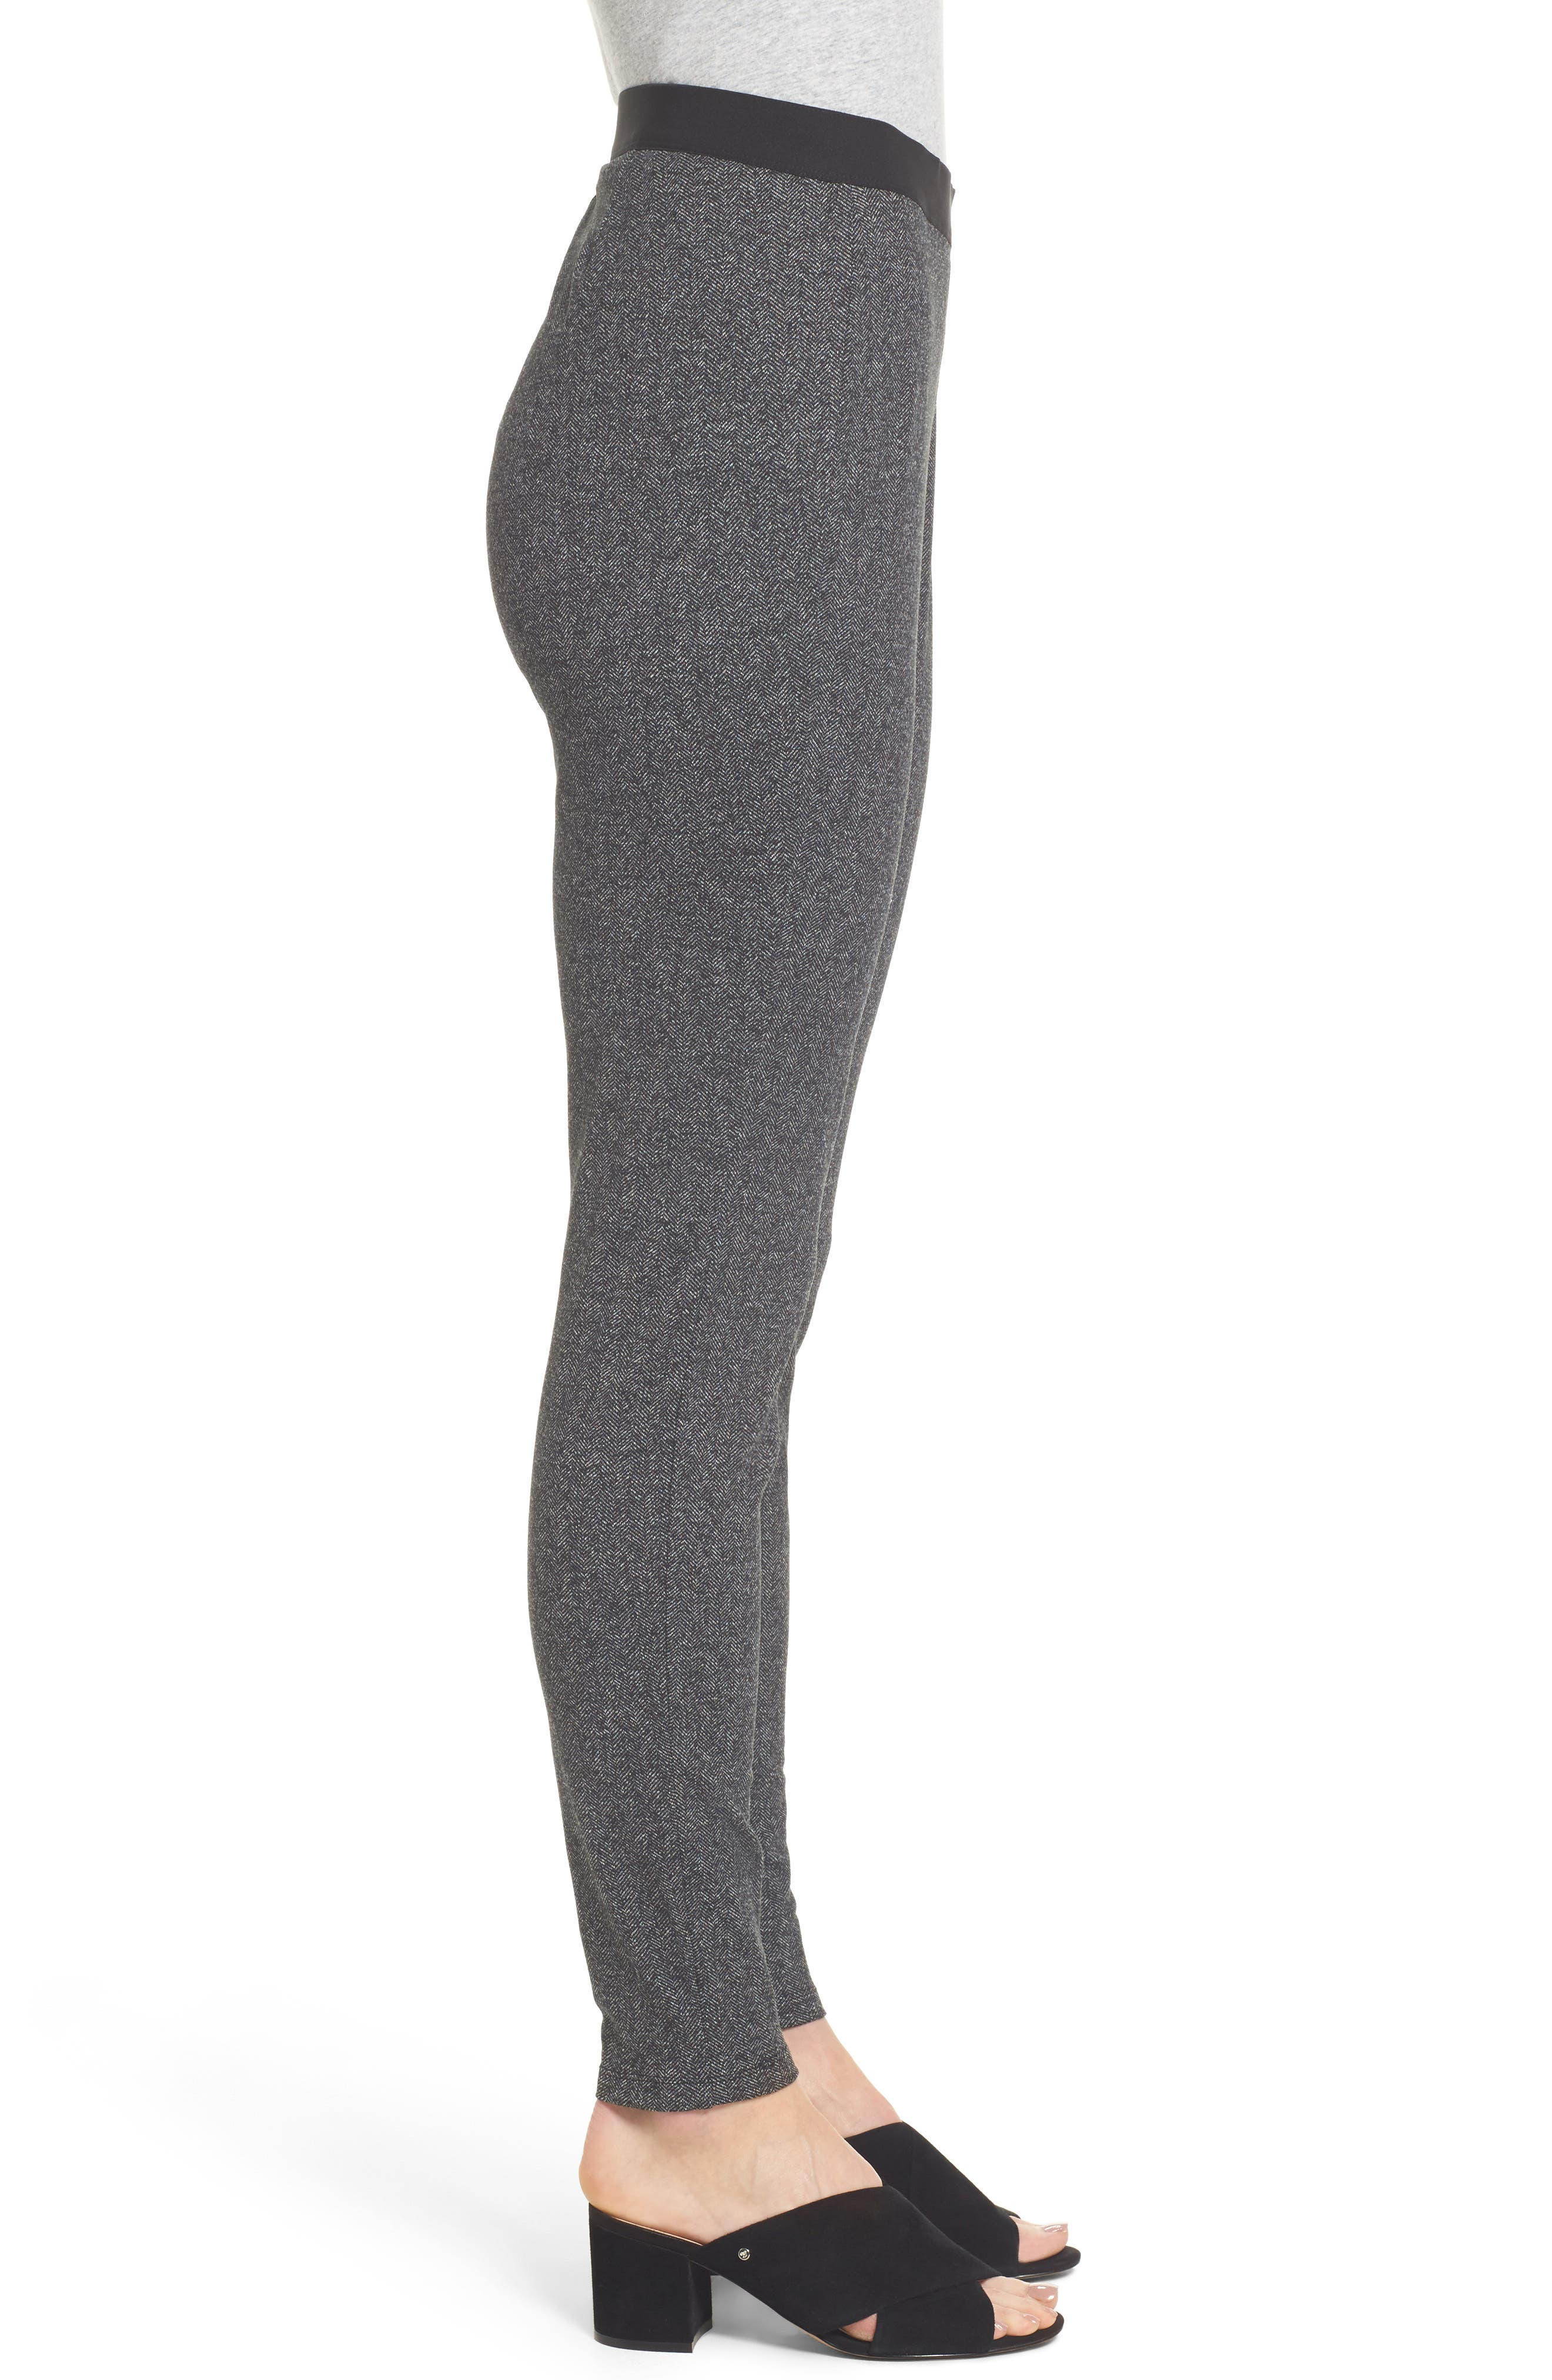 Herringbone Leggings,                             Alternate thumbnail 3, color,                             Charcoal